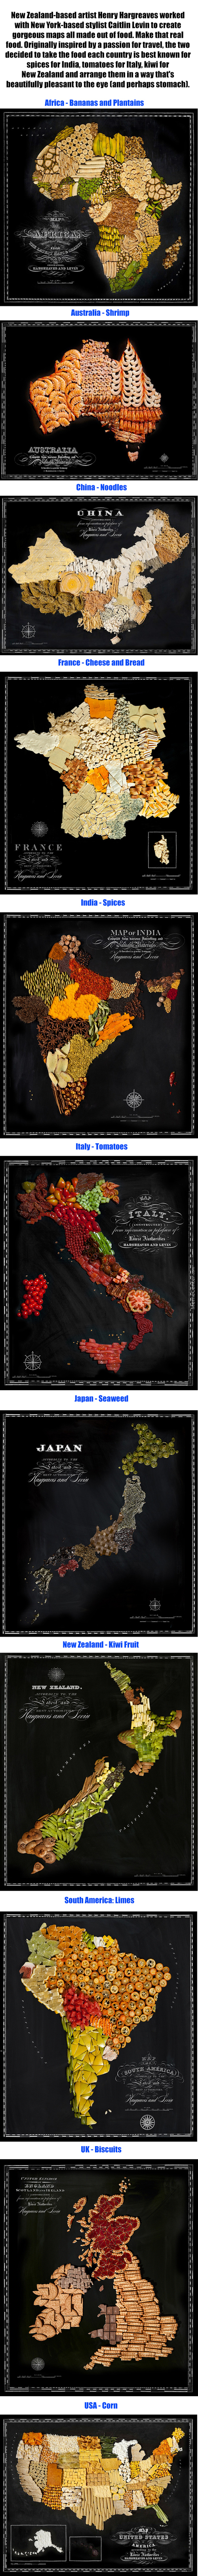 Beautiful Maps Of Countries Made Out Of Real Food